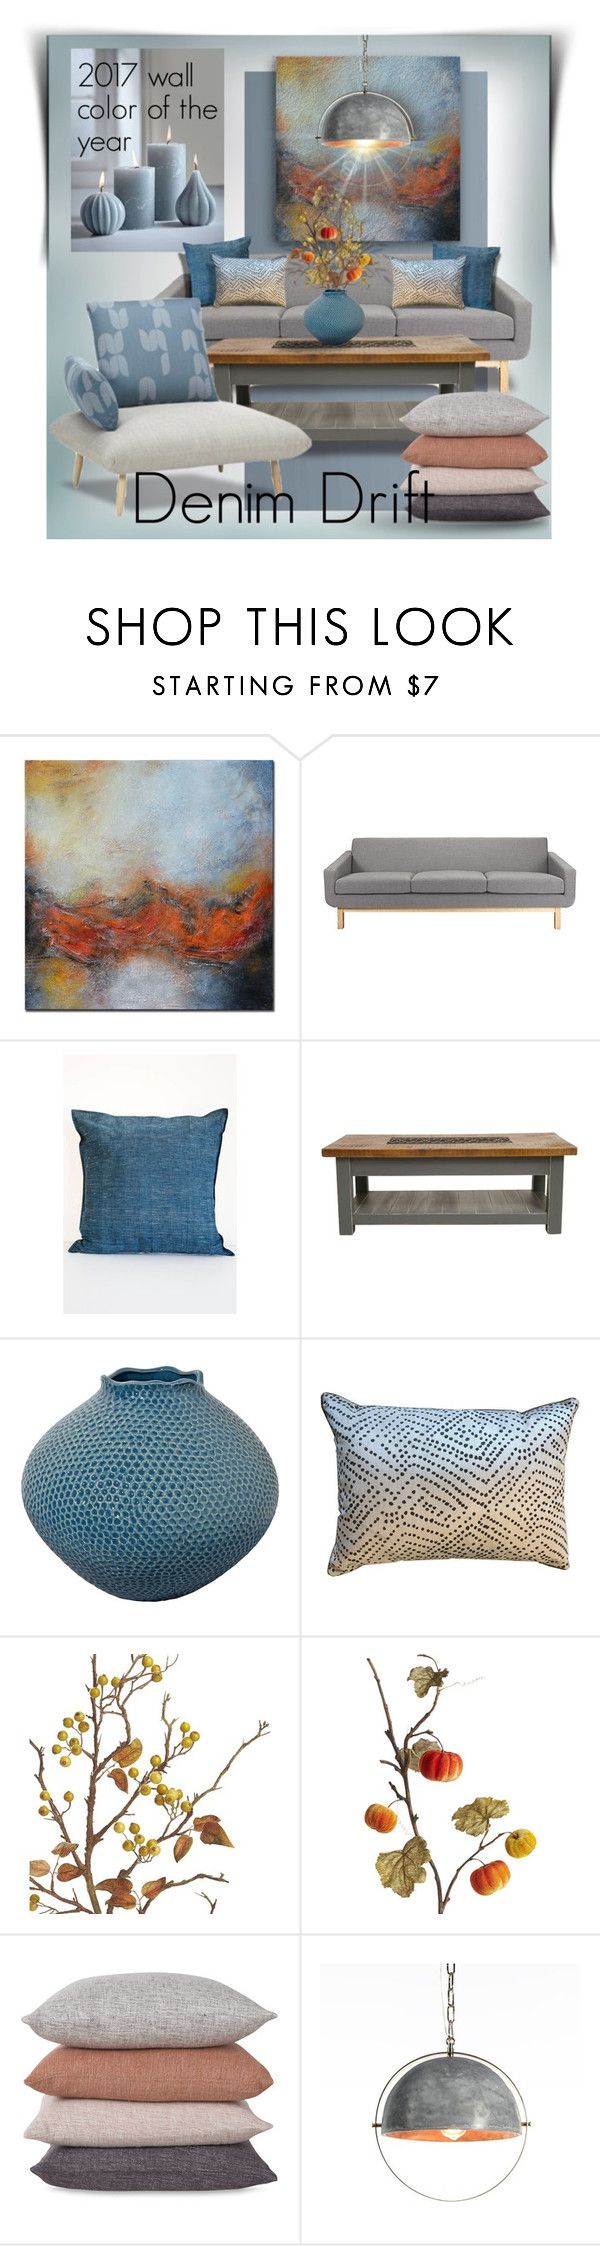 """Denim Drift 2017 Wall Color of the Year"" by constanceann ❤ liked on Polyvore featuring interior, interiors, interior design, home, home decor, interior decorating, B'Sbee, Ryan Studio, Crate and Barrel and West Elm"